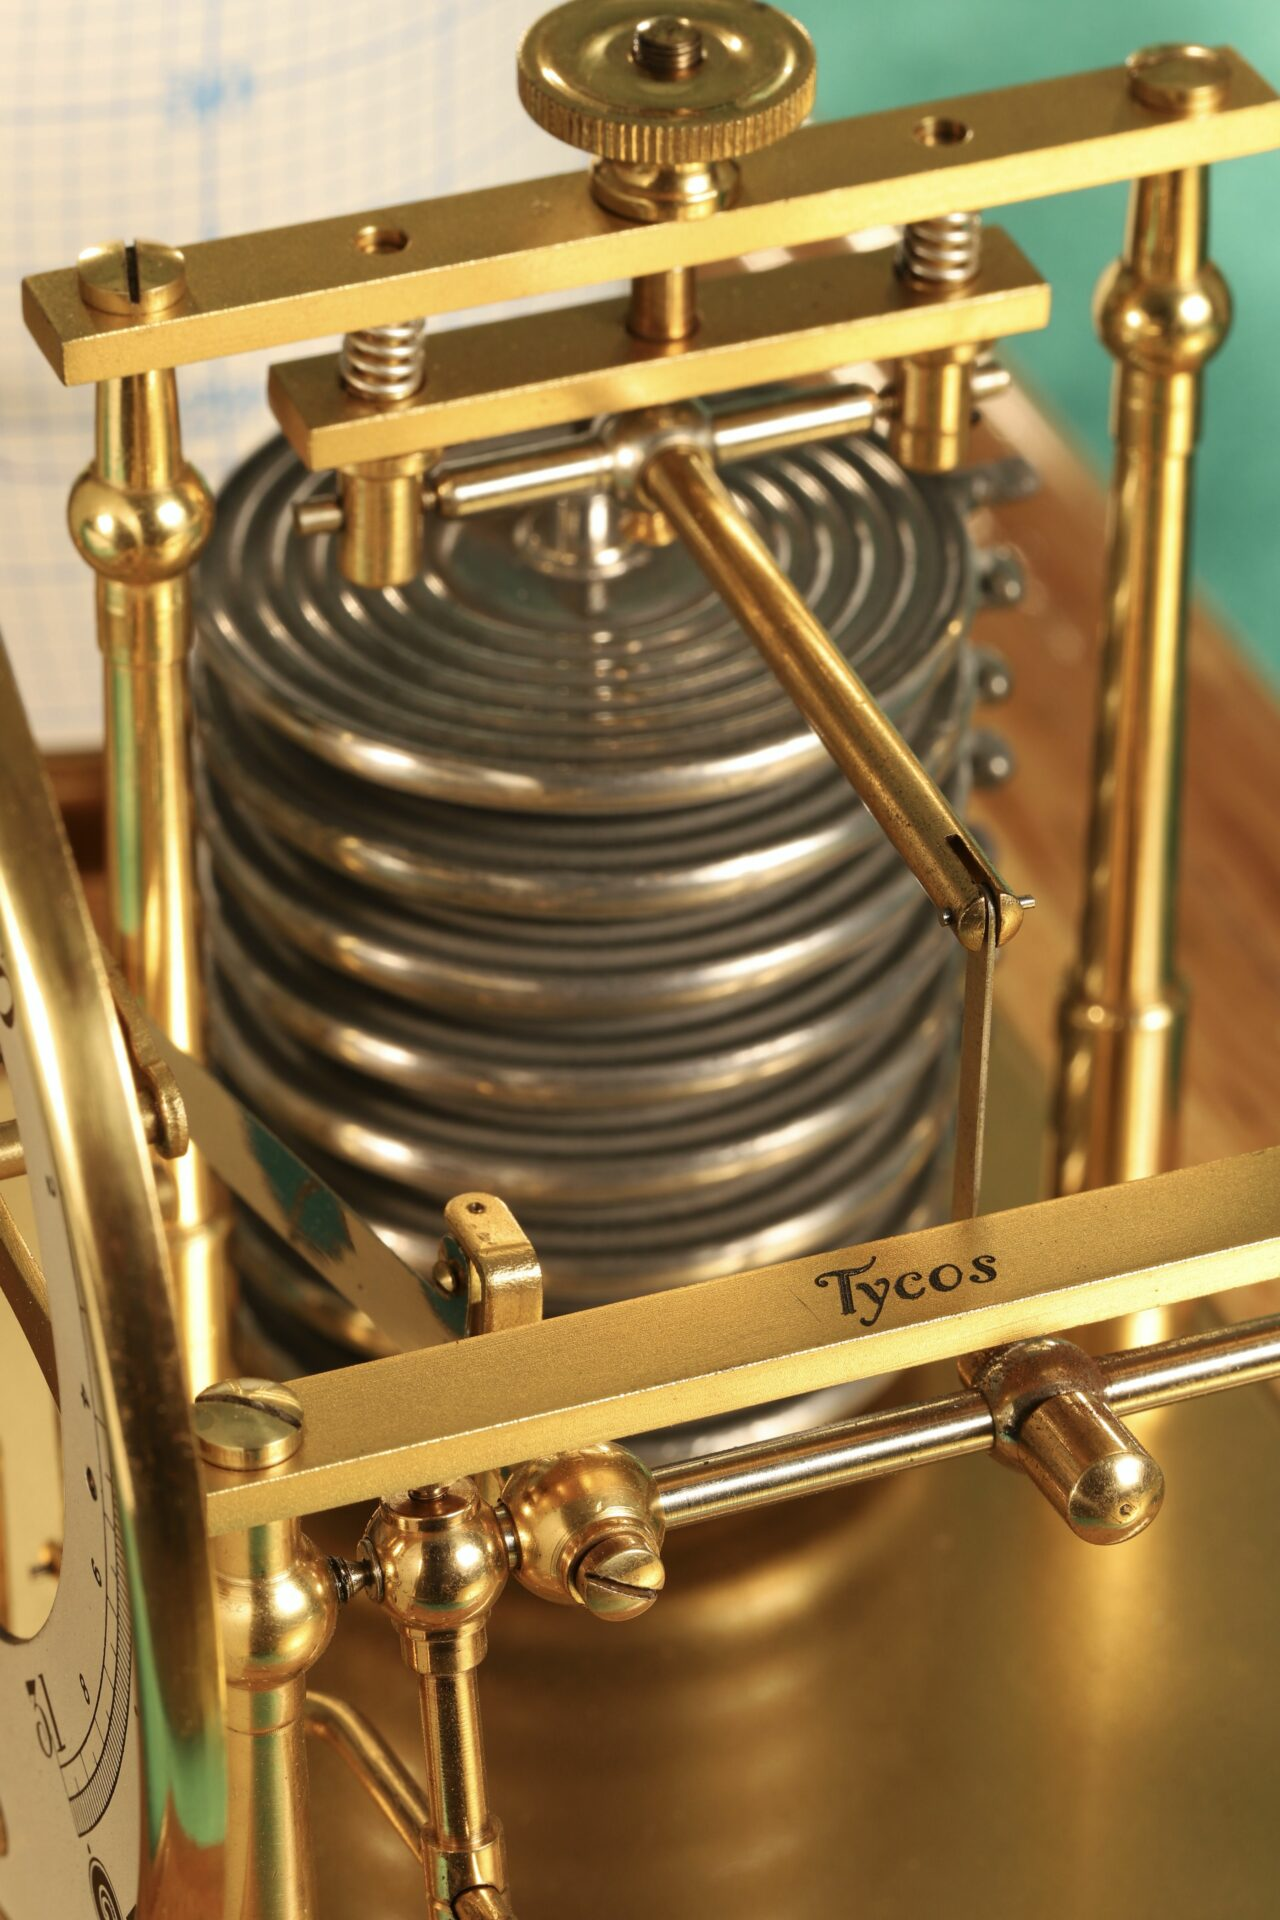 Close up of Short & Mason Tycos Drum Barograph with Dial No 5431 c1930 with case lid removed, showing 'Tycos'